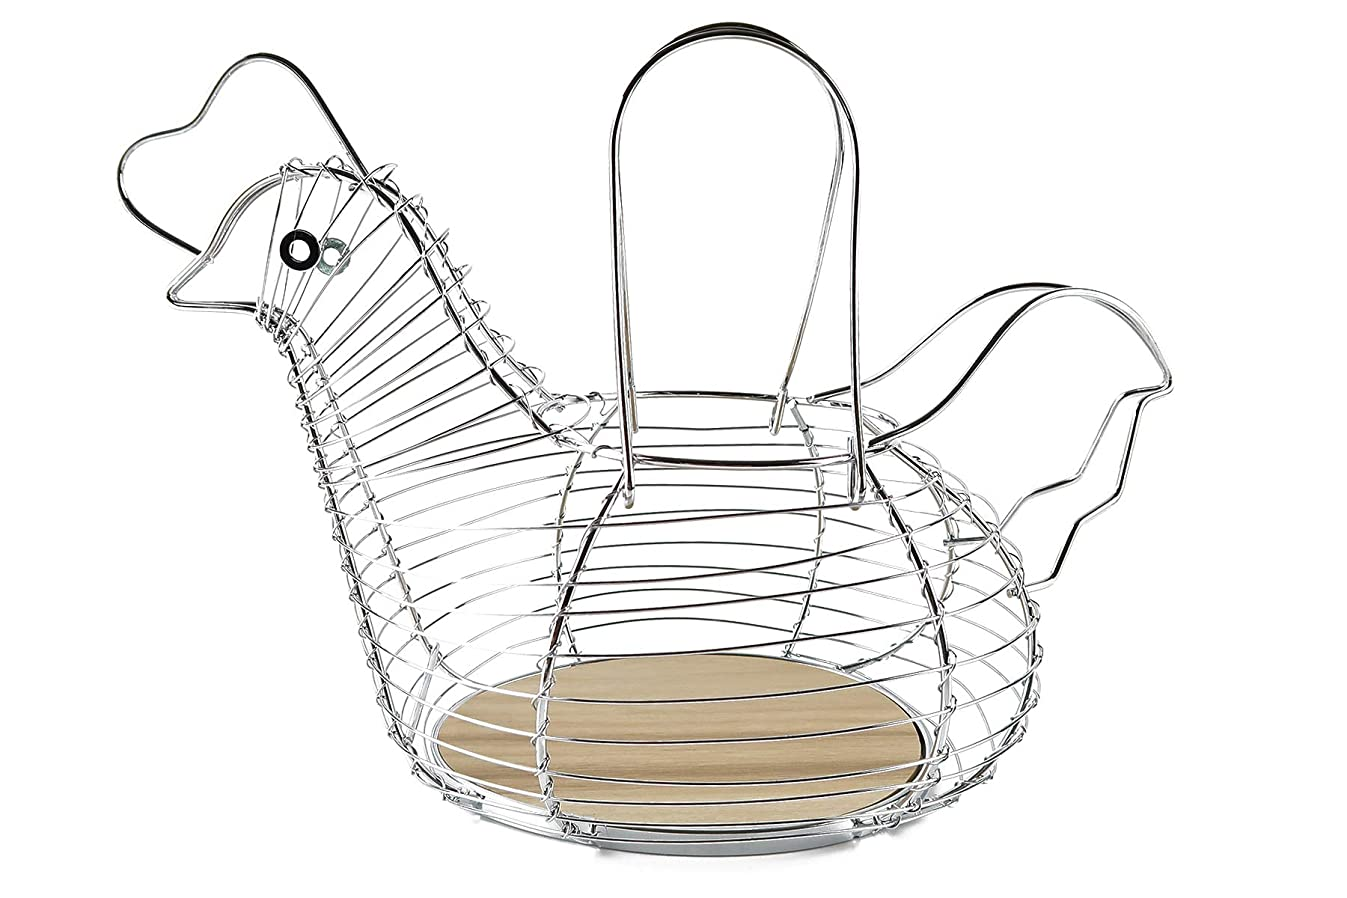 Chrome Steel Wired Egg Basket with Wood Base, Holds 15-20 Eggs, Medium Size